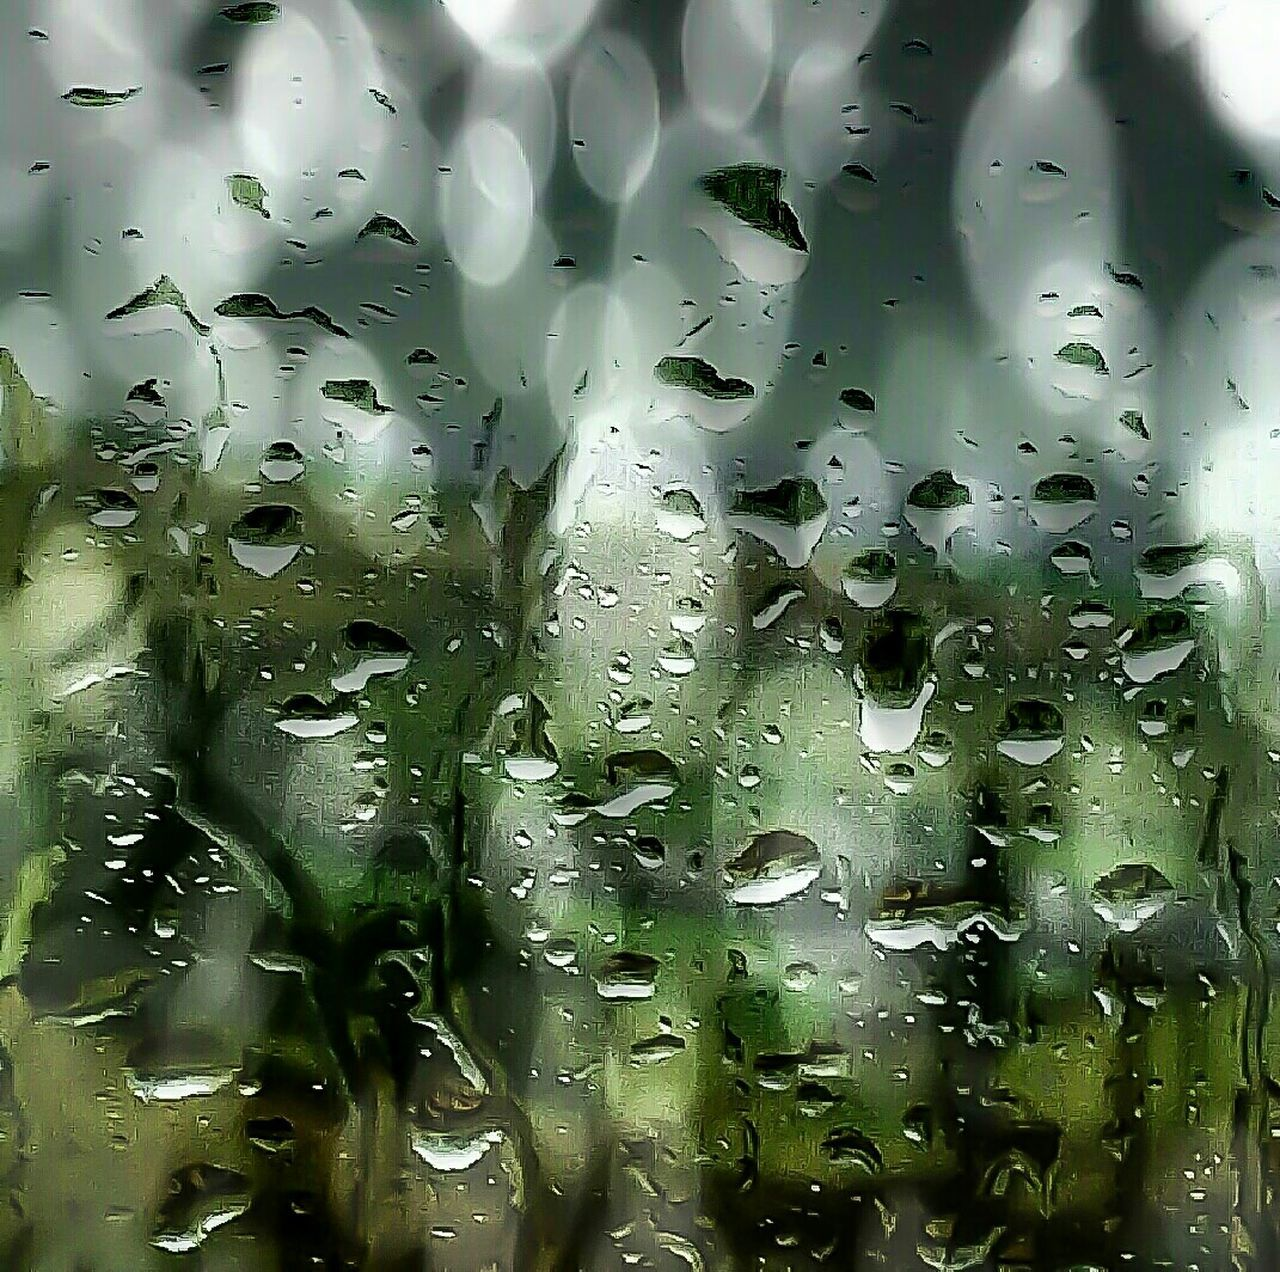 backgrounds, drop, full frame, water, green color, wet, no people, close-up, raindrop, plant, nature, freshness, day, indoors